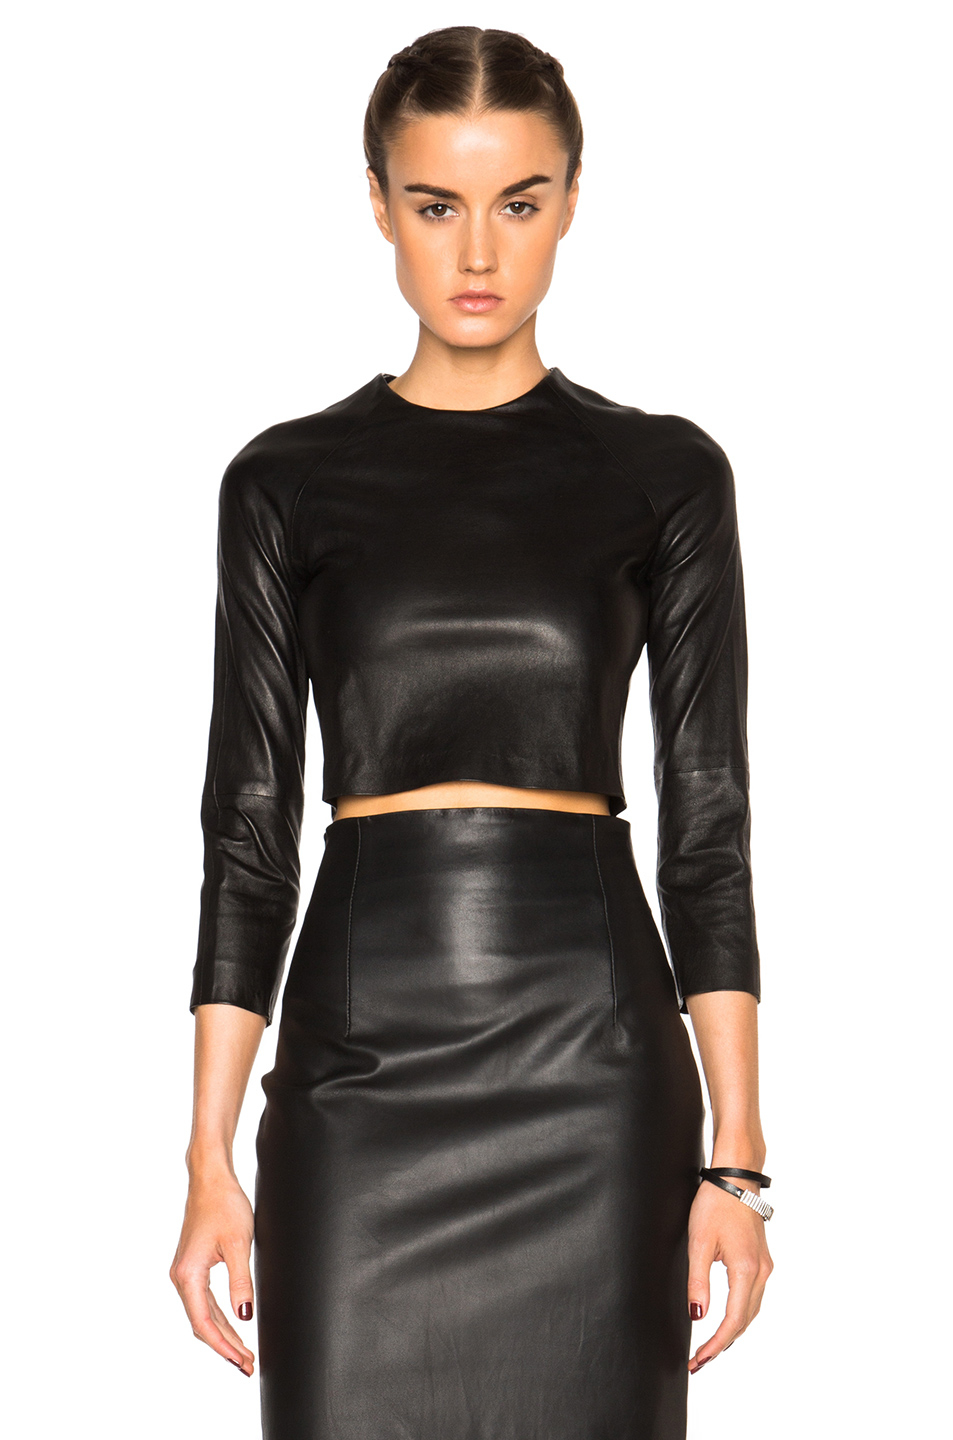 Black leather crop top - Black leather crop top with padded cups. Looks wrinkly right now because it was in a pile of clothing. Zipper closure in back.